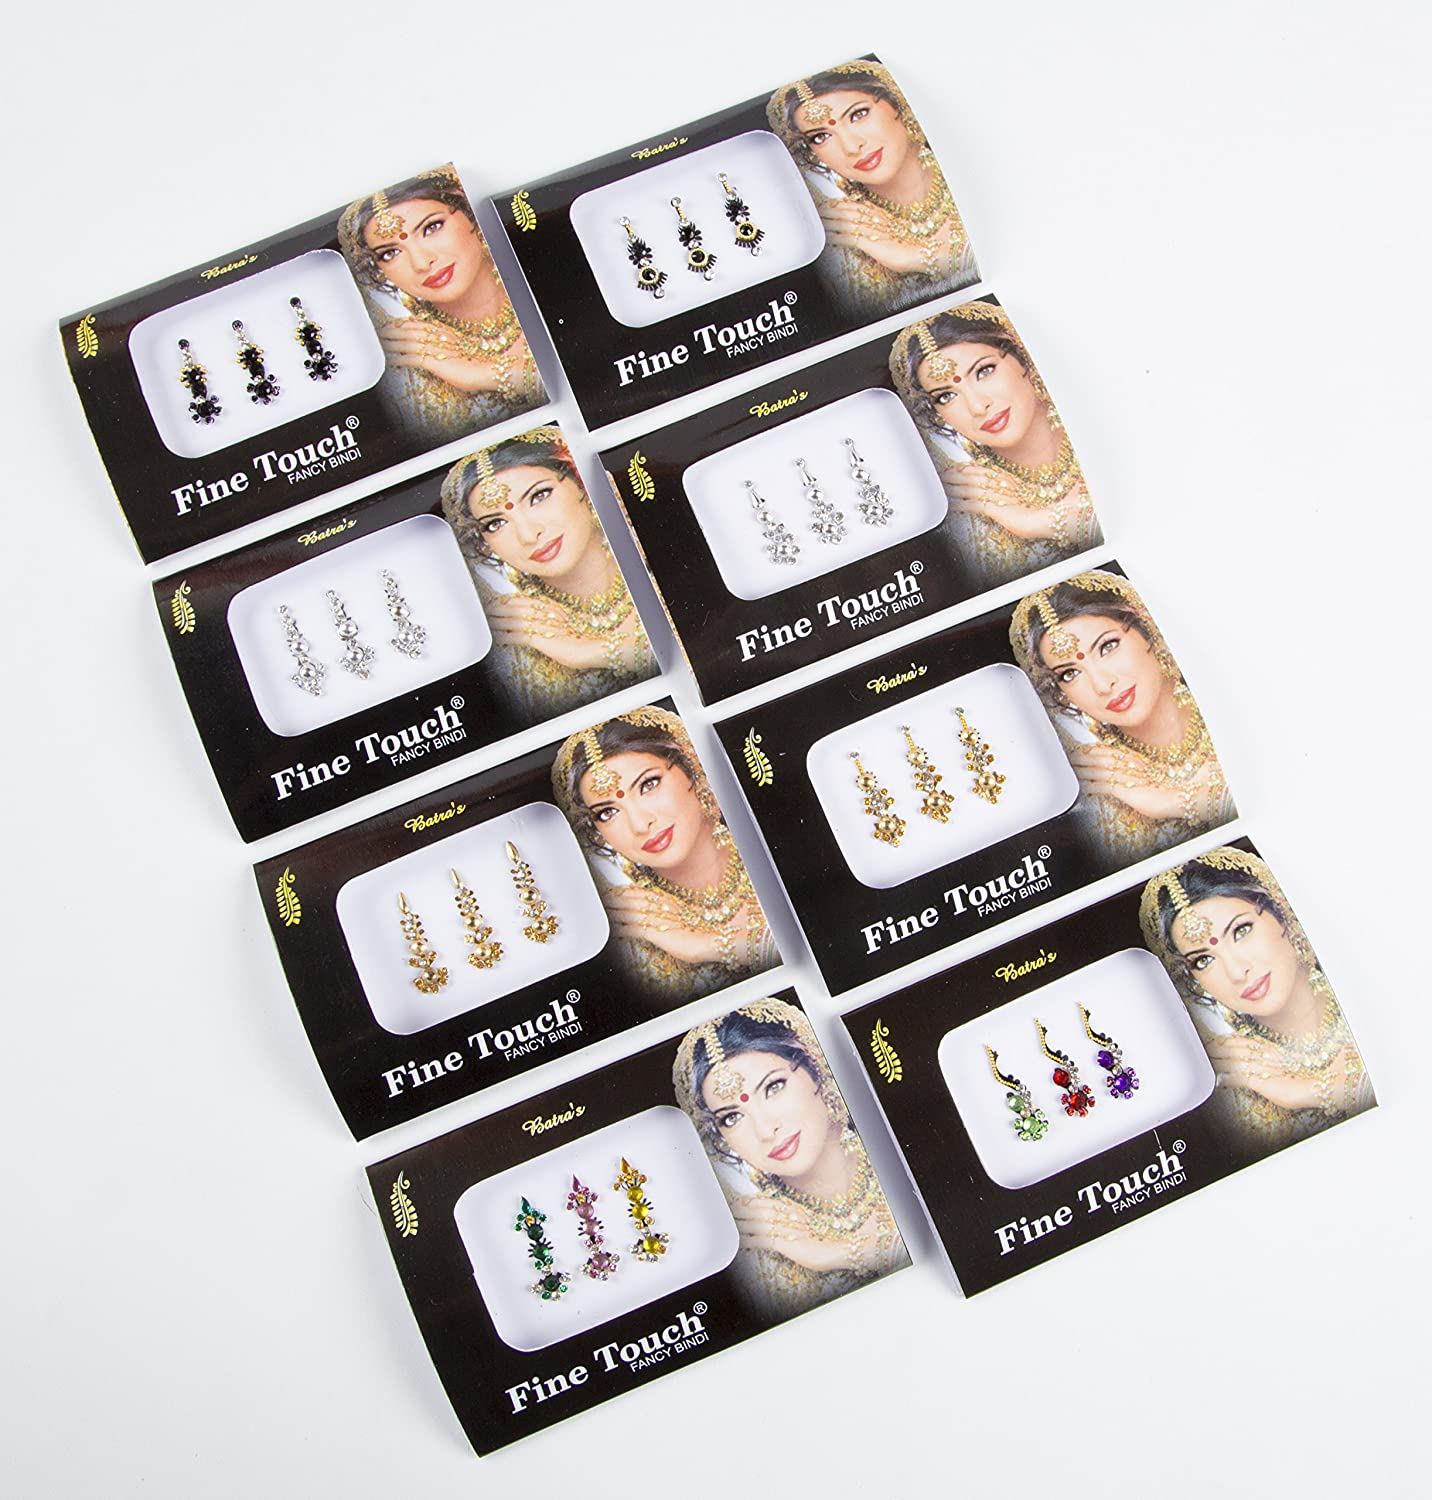 8 Bindi Pack- 24 Combo Bindi Stickers Multicolored,Silver,Gold,Black, Bindi Tattoo Bindi Jewelry Sheesham IVY LLP